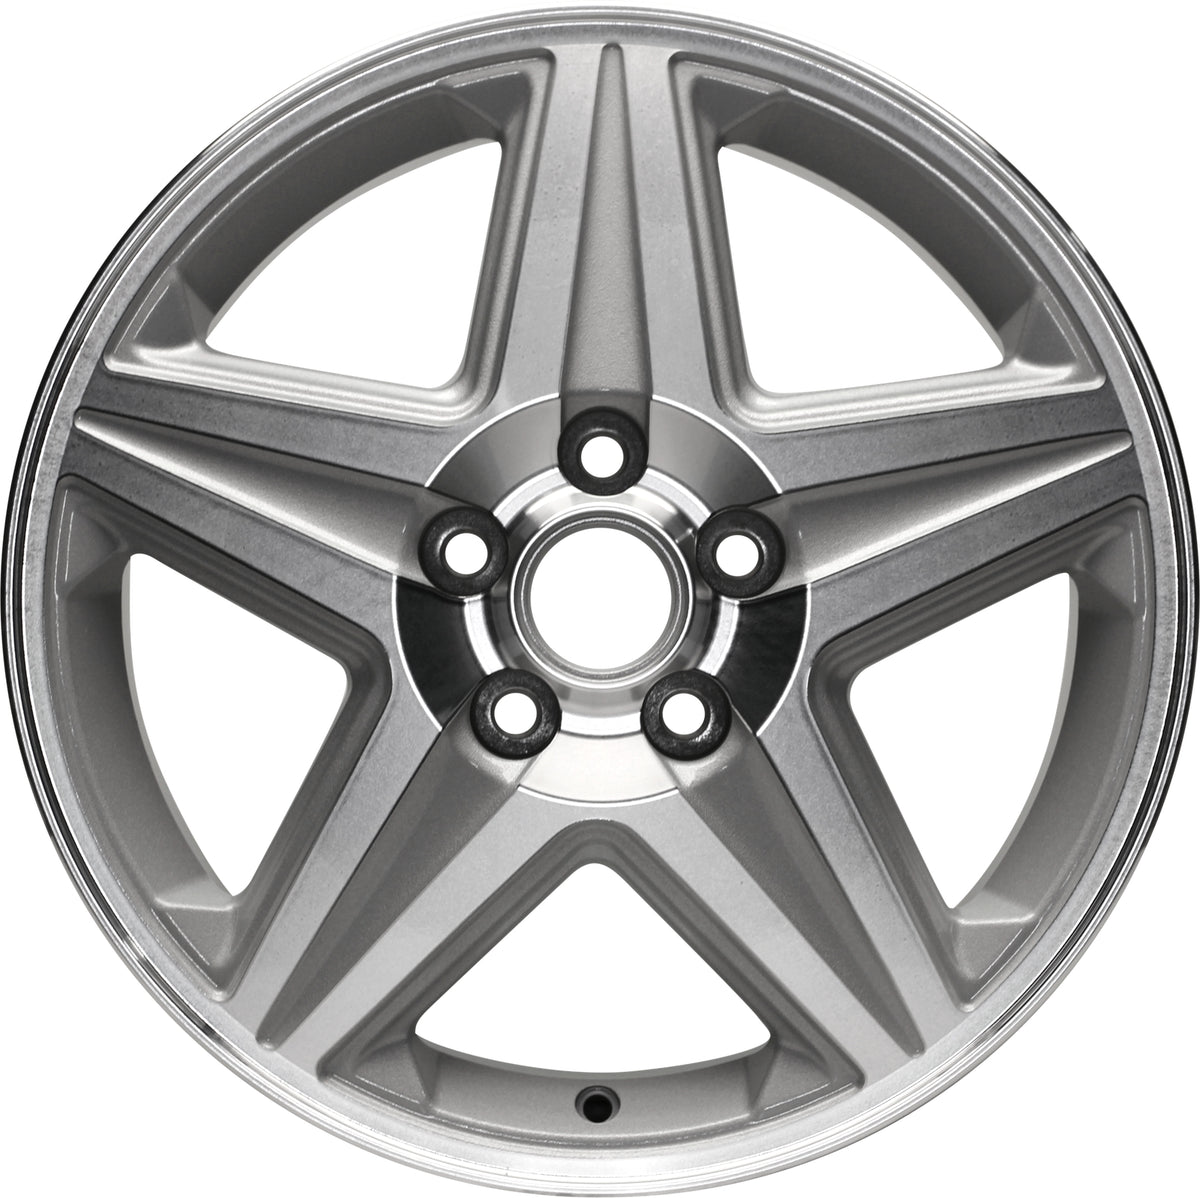 New 17 X 6.5 Silver Machined Wheel Rim For 2004-2005